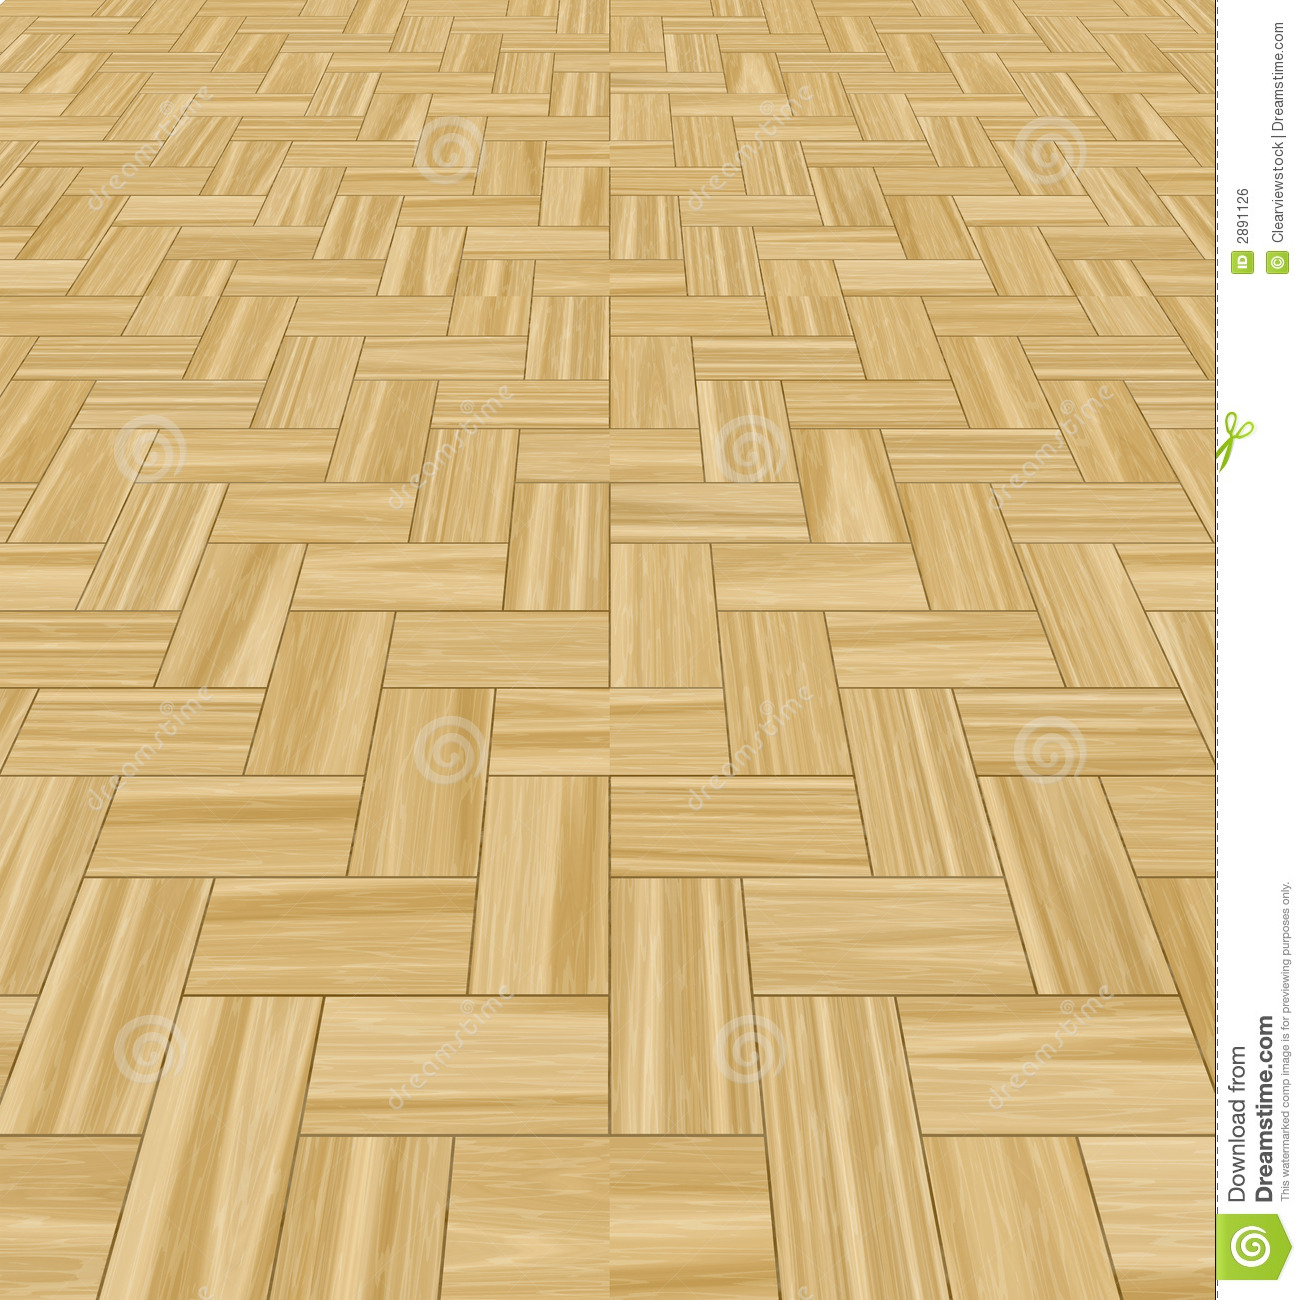 Parquetry wood floor tiles royalty free stock image for Floor tiles images